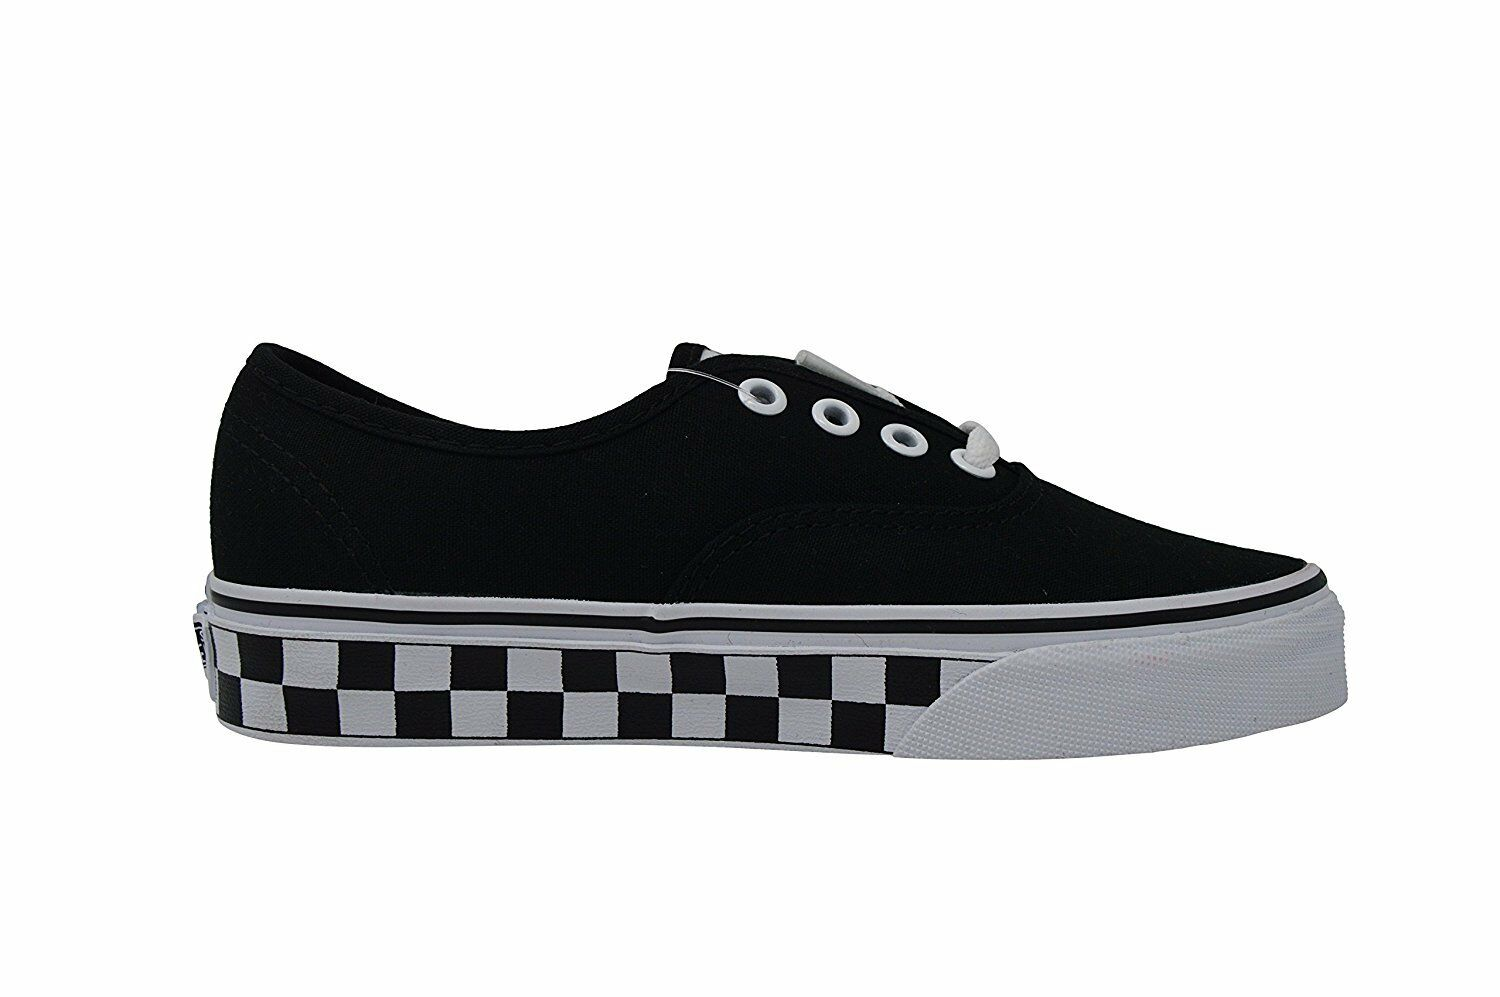 NEW NEW NEW VANS AUTHENTIC CHECKER TAPE schwarz SKATE schuhe MENS 3.5 damen 5 NIB 9e9268